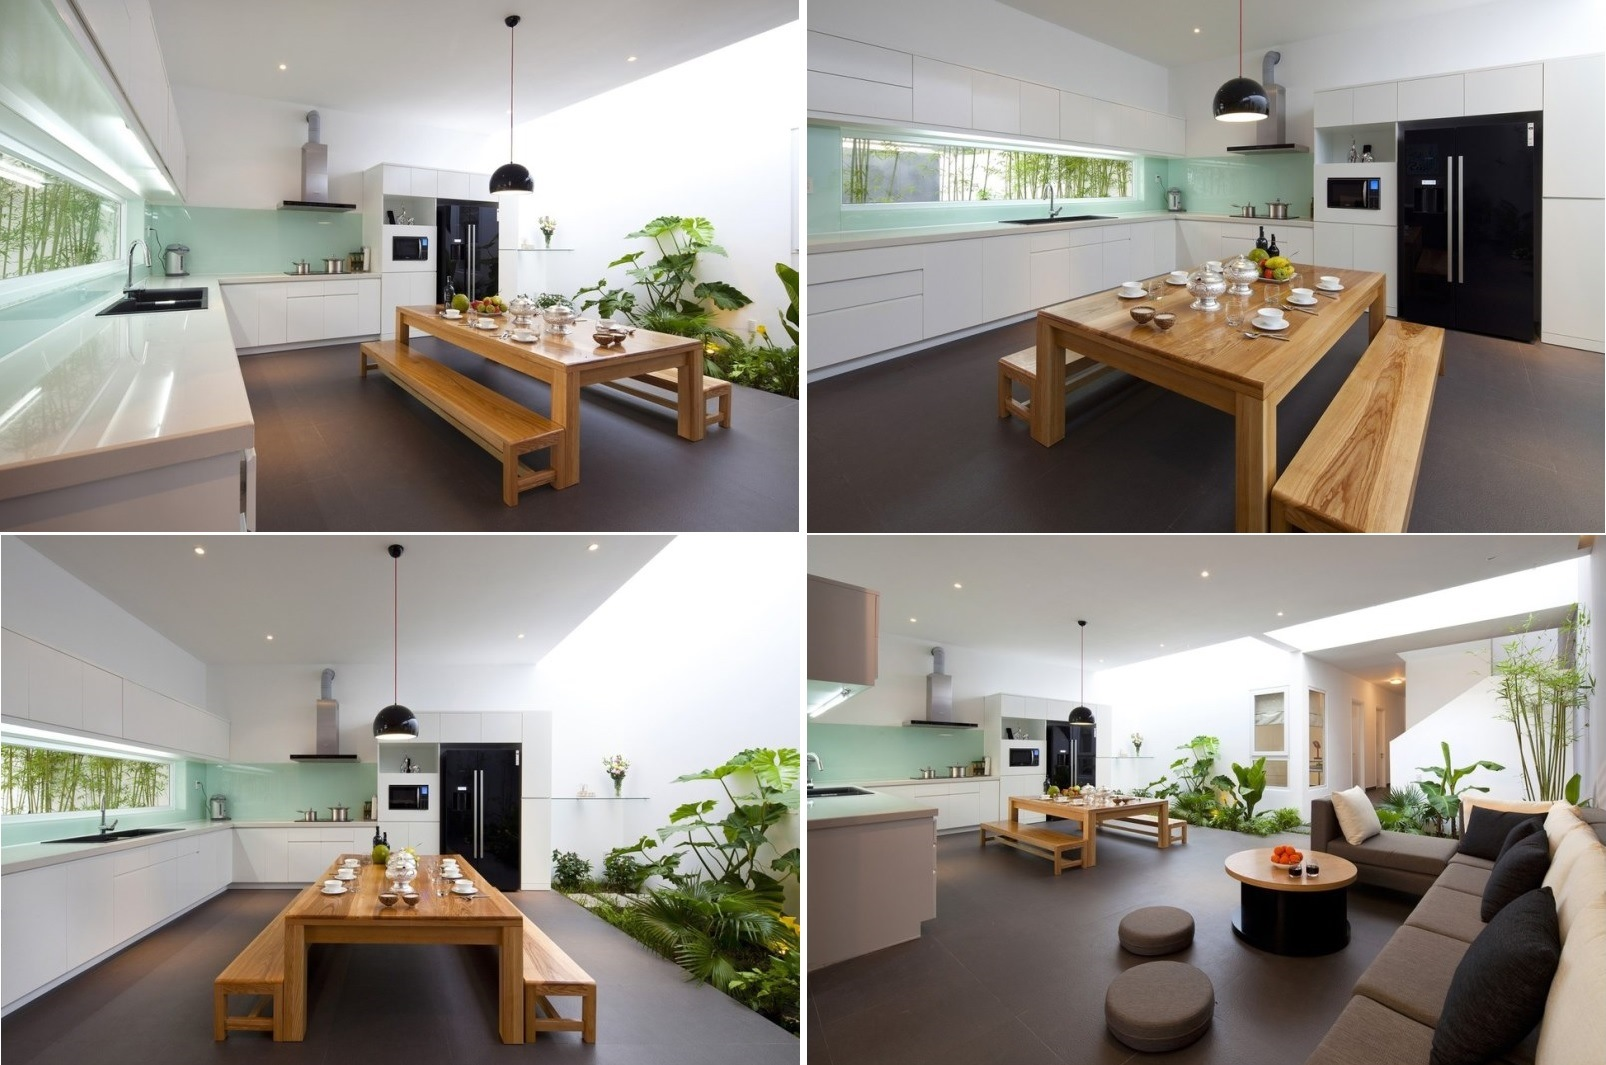 Minimalist house indoor garden kitchen inspiration for House and garden kitchen photos